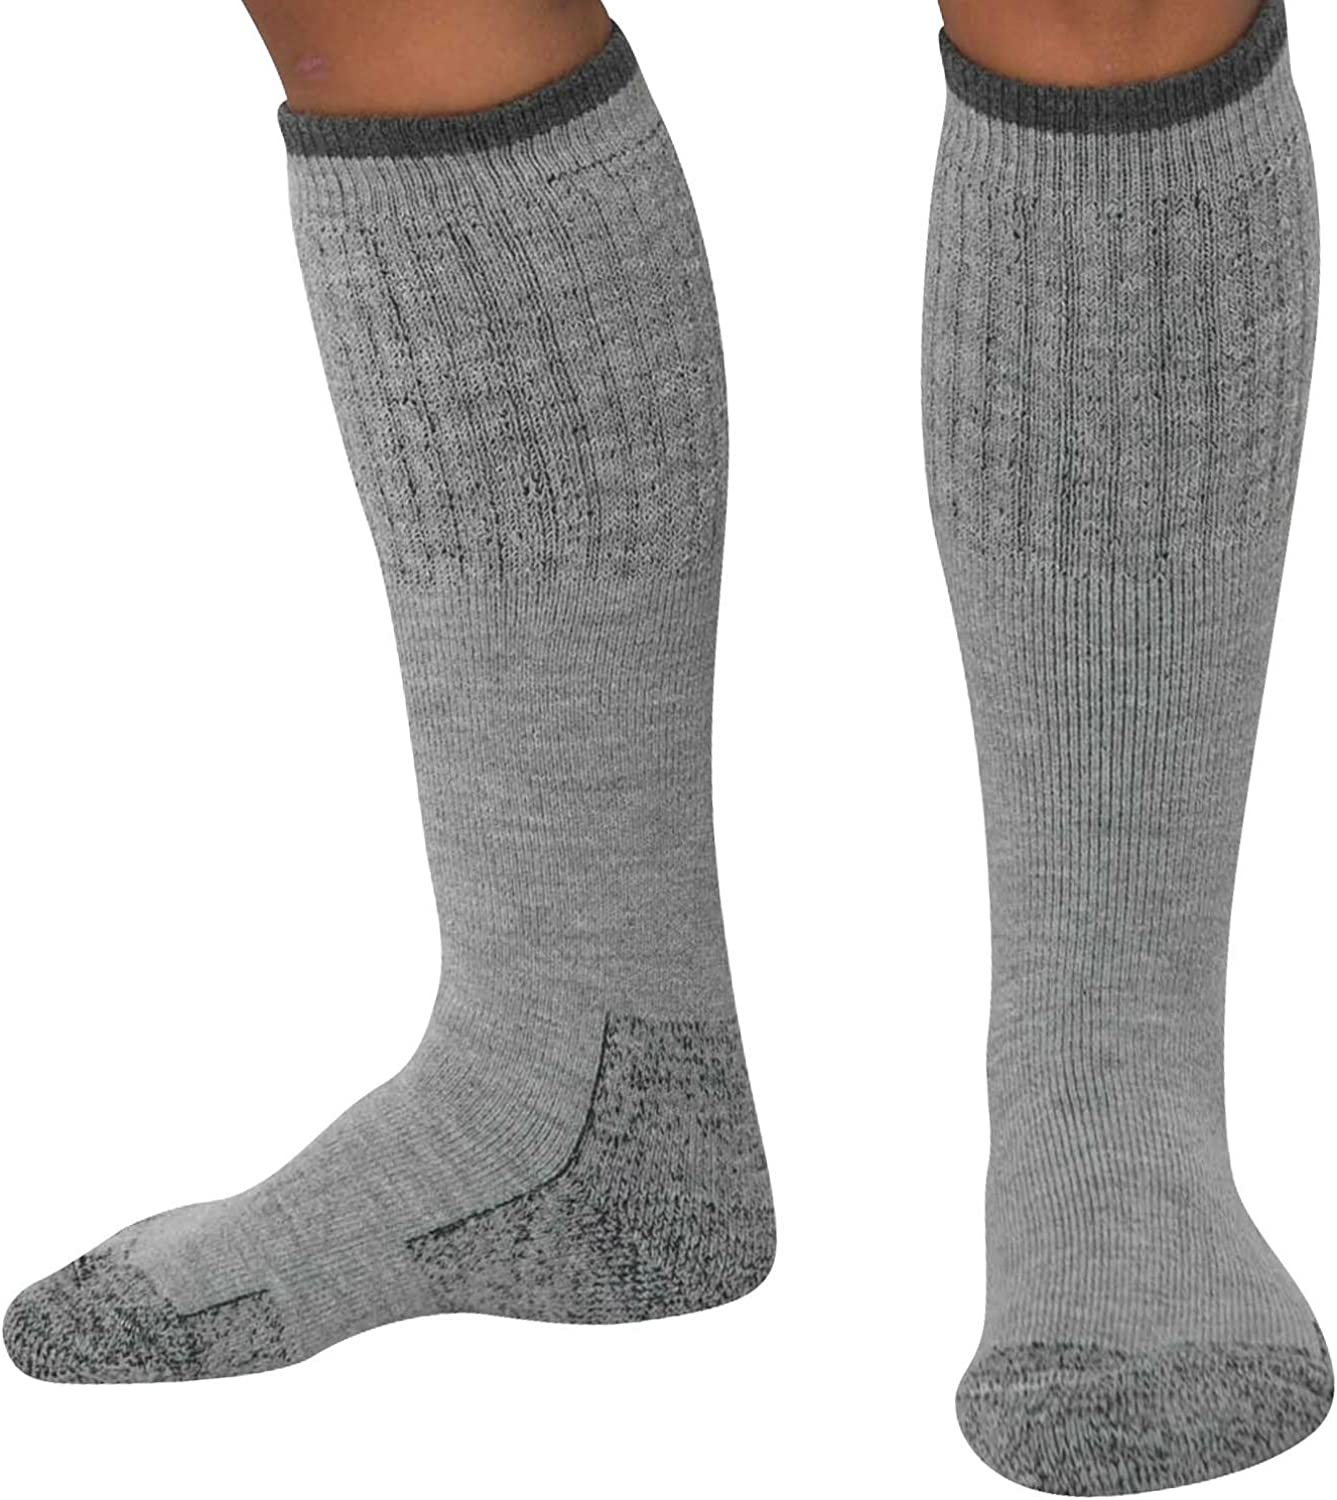 Heavy Work Boot Socks – Durable Comfortable - Great for Hiking, Camping, Hunting